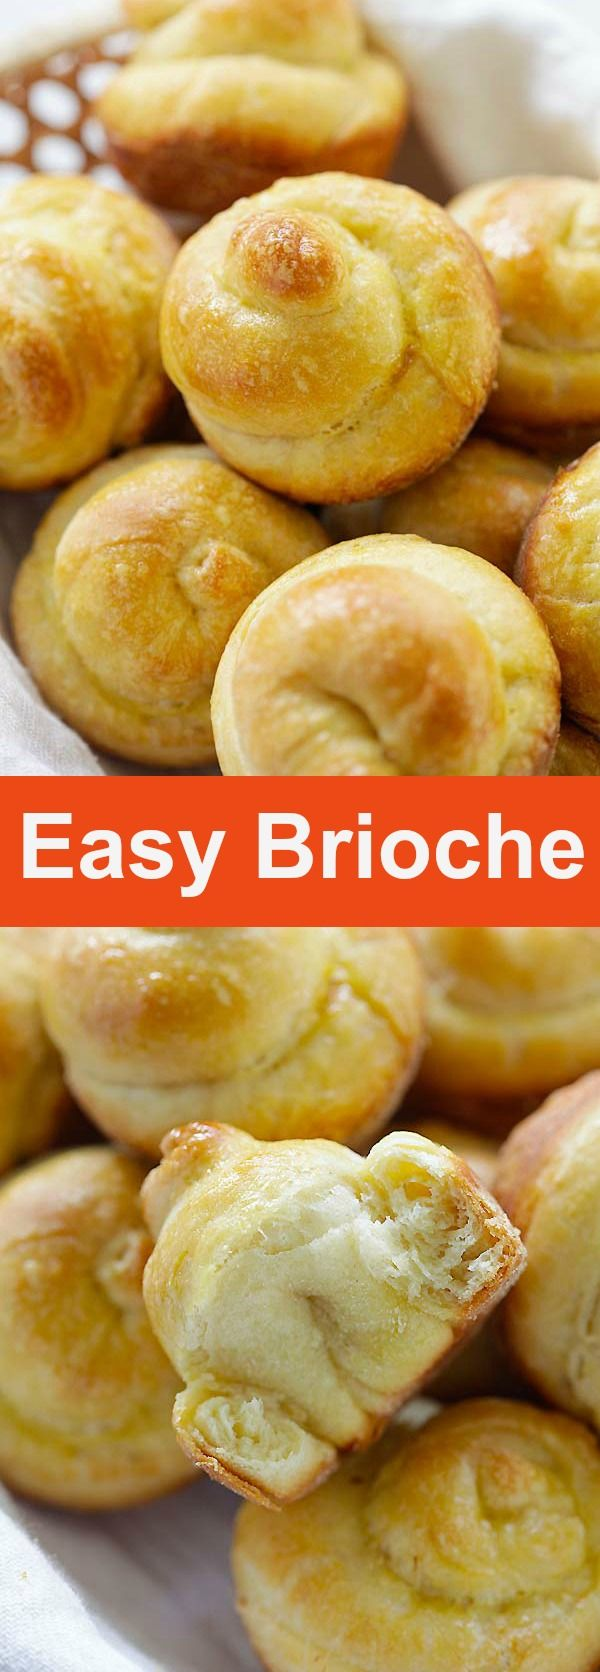 Easy Brioche – the easiest homemade French Brioche recipe ever! It's eggy, buttery, puffy and flaky with a crispy crumbs that you can't stop eating   rasamalaysia.com